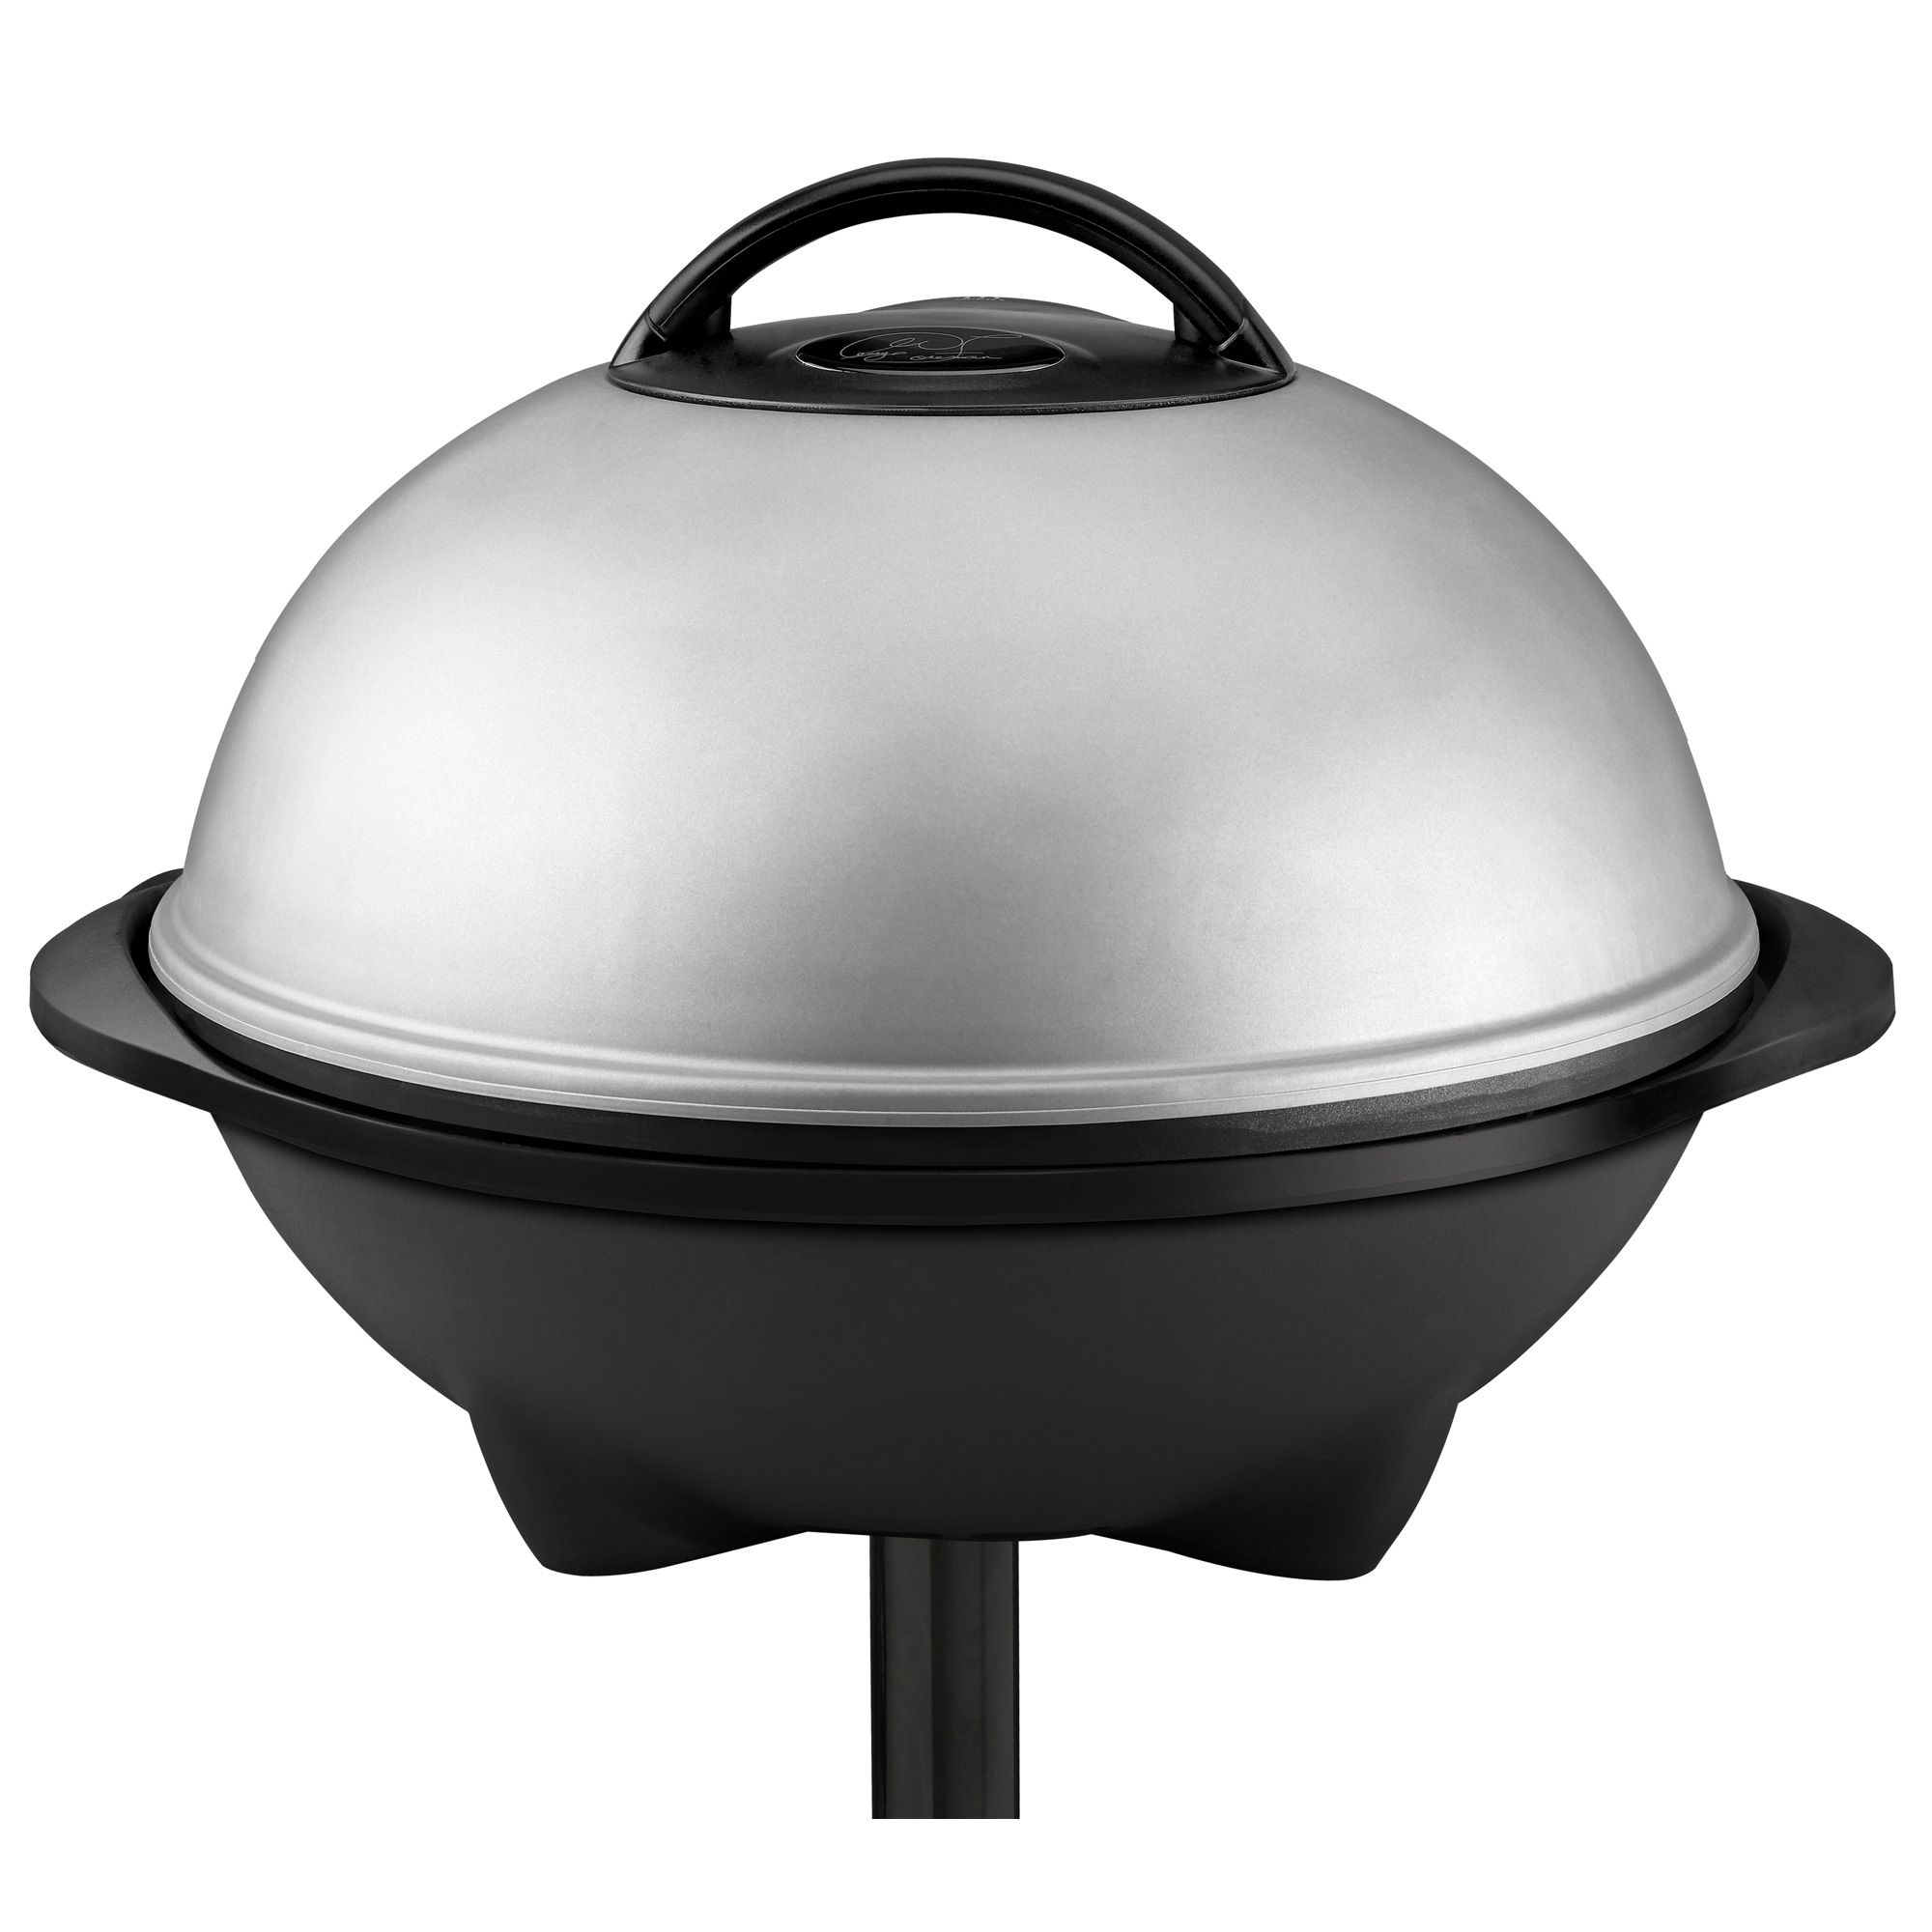 5d1ddc8d08e Enjoy healthy grilling on your patio with the 240 sq. in. indoor.outdoor  grill GGR50B by George Foreman. Shop George Foreman products to start  grilling now!